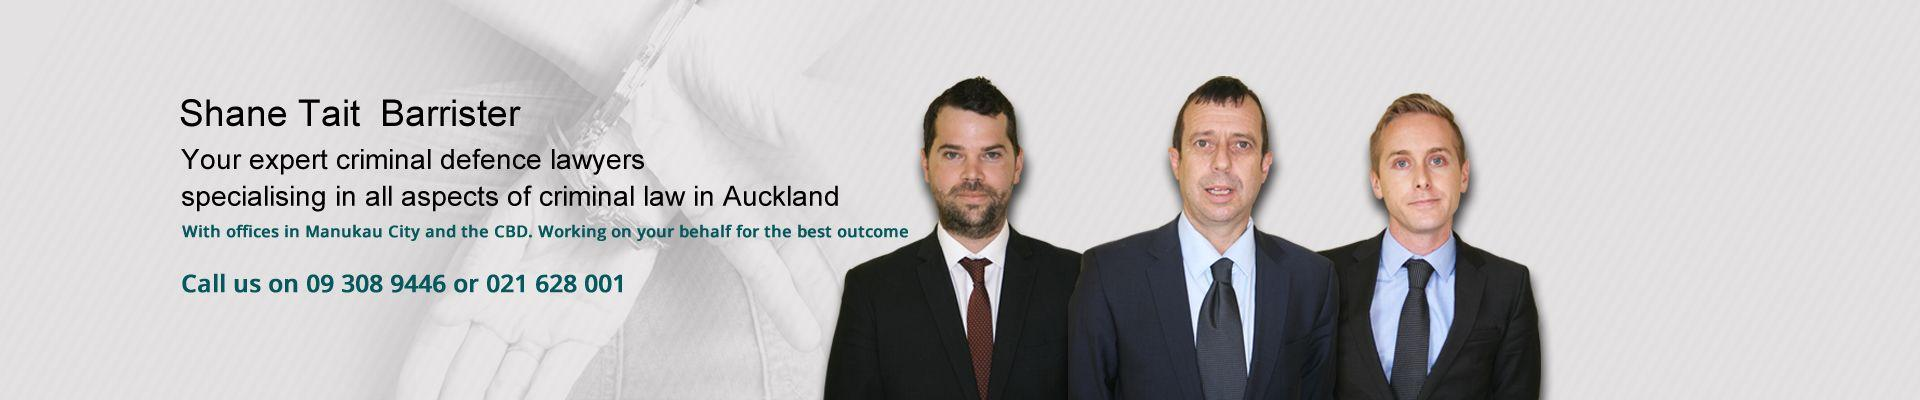 Shane Tait Auckland Criminal Lawyer